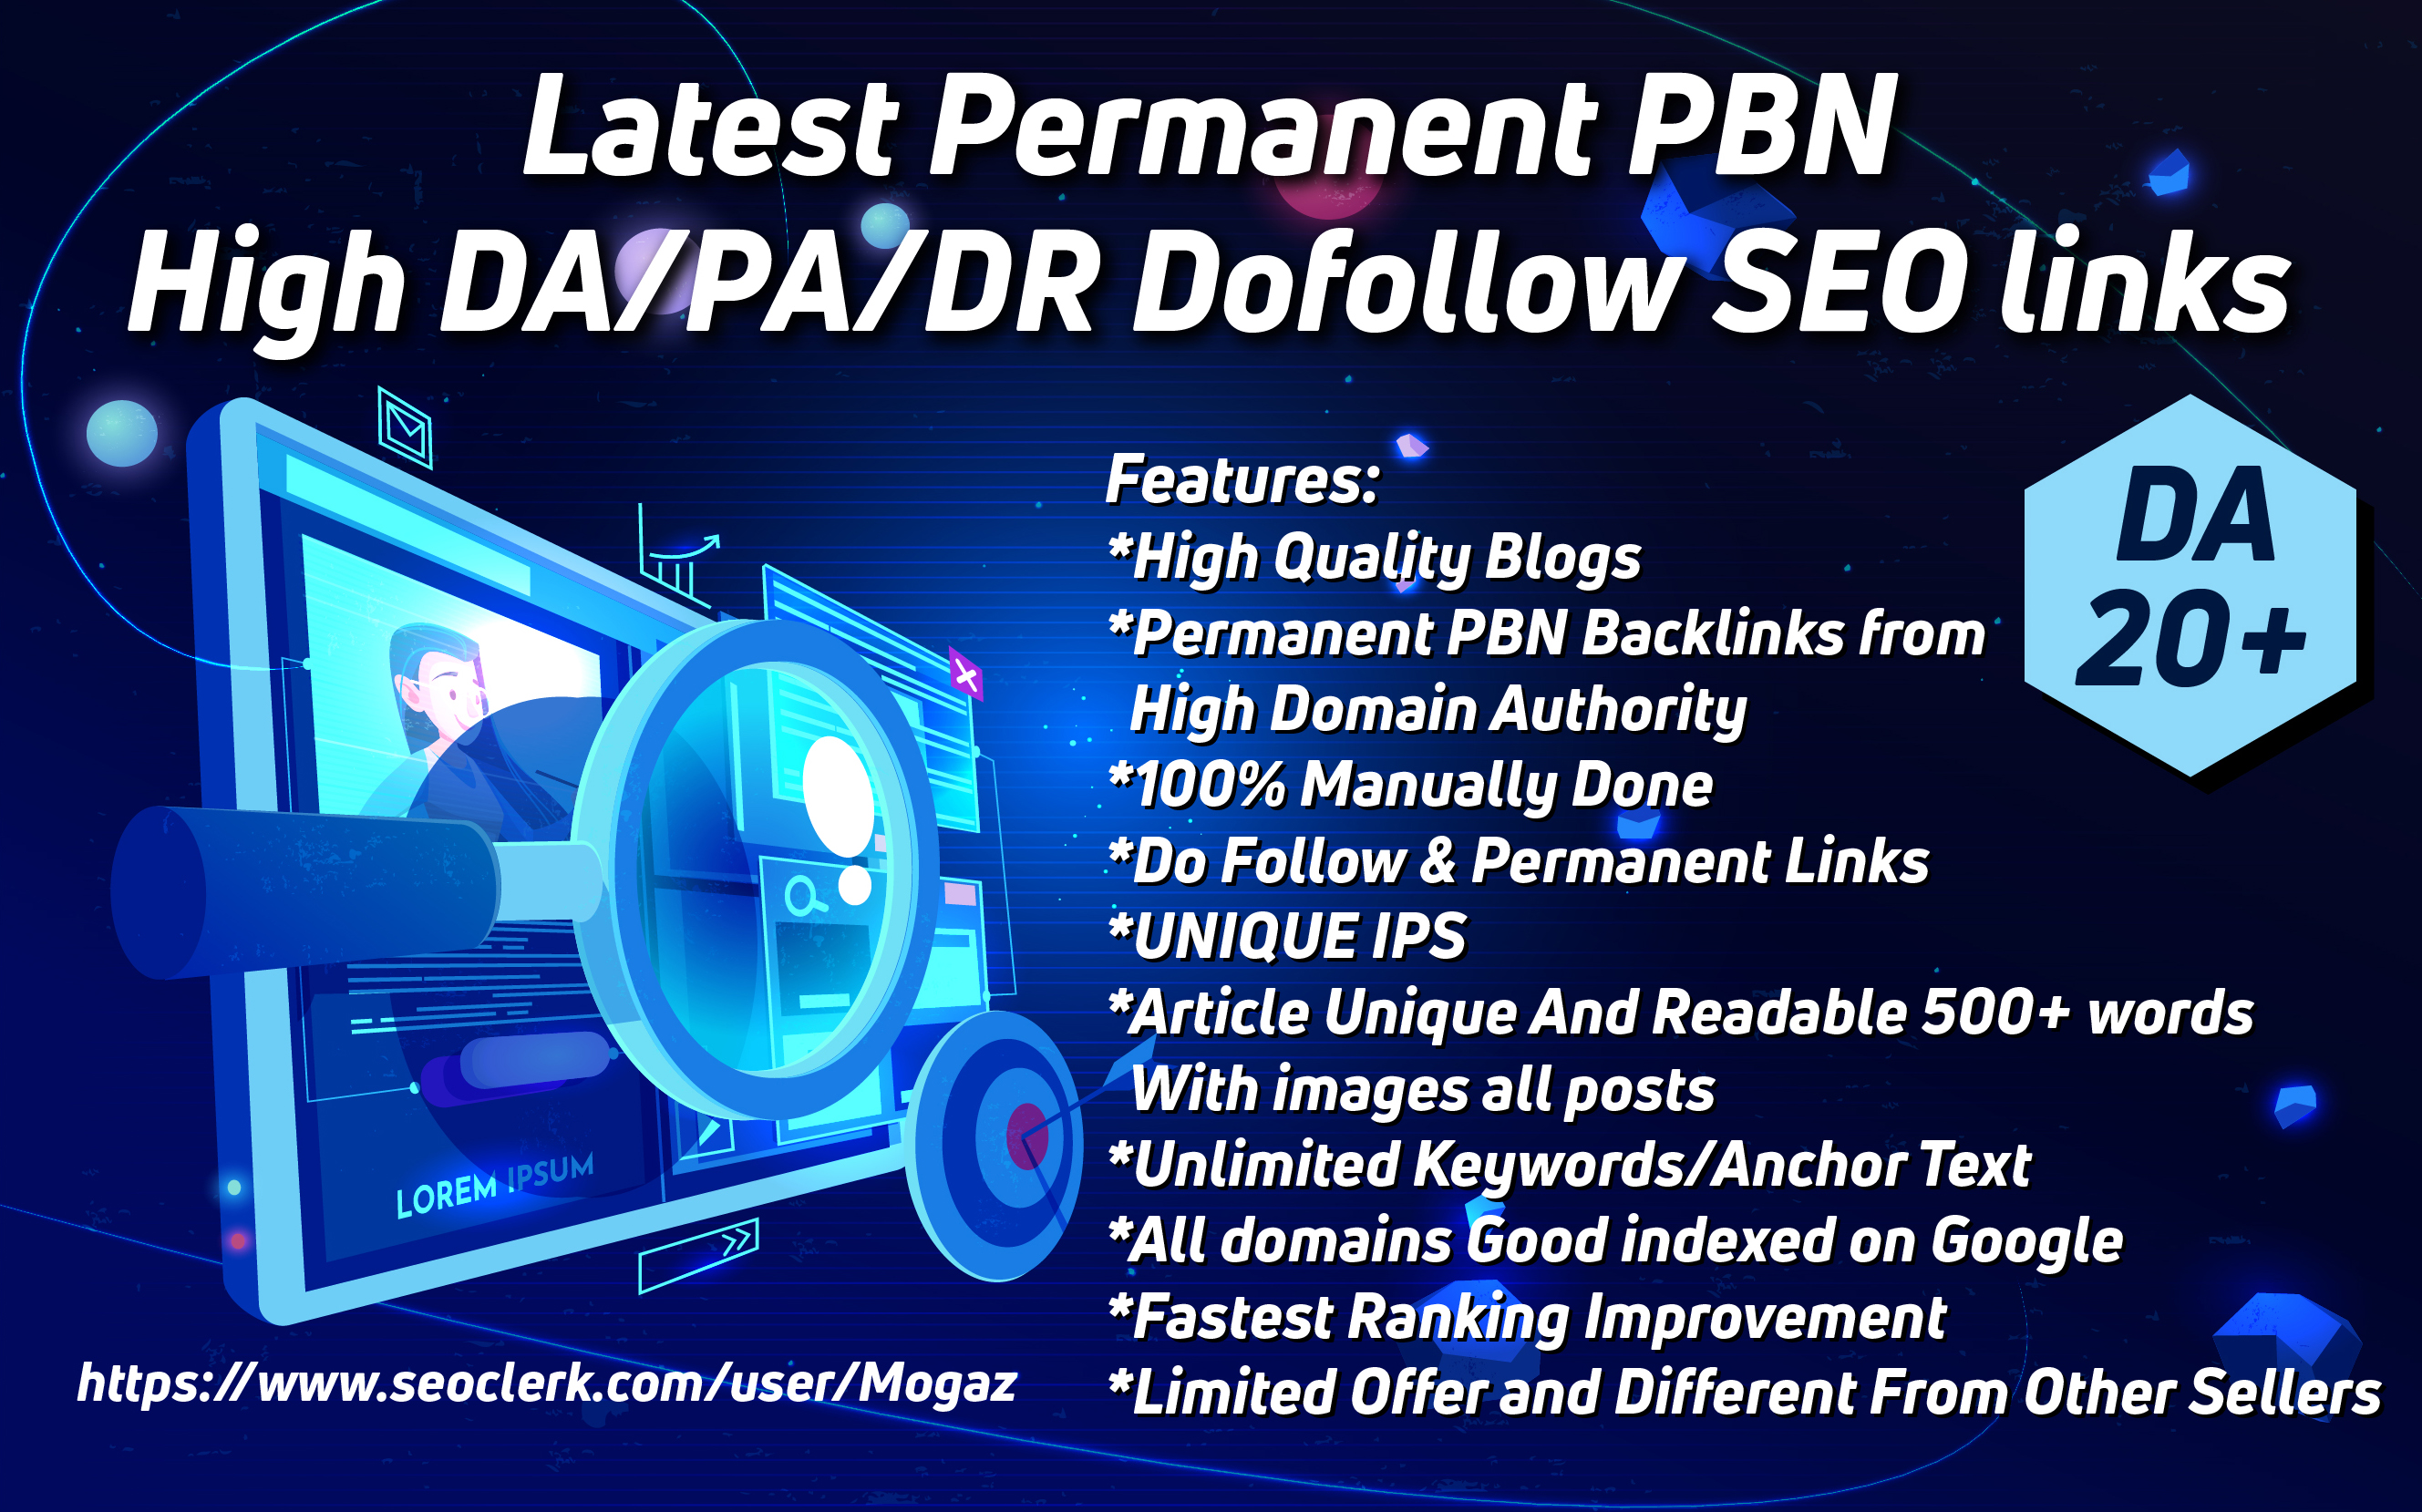 Latest Permanent 20 PBN High DA/PA/DR Dofollow SEO links